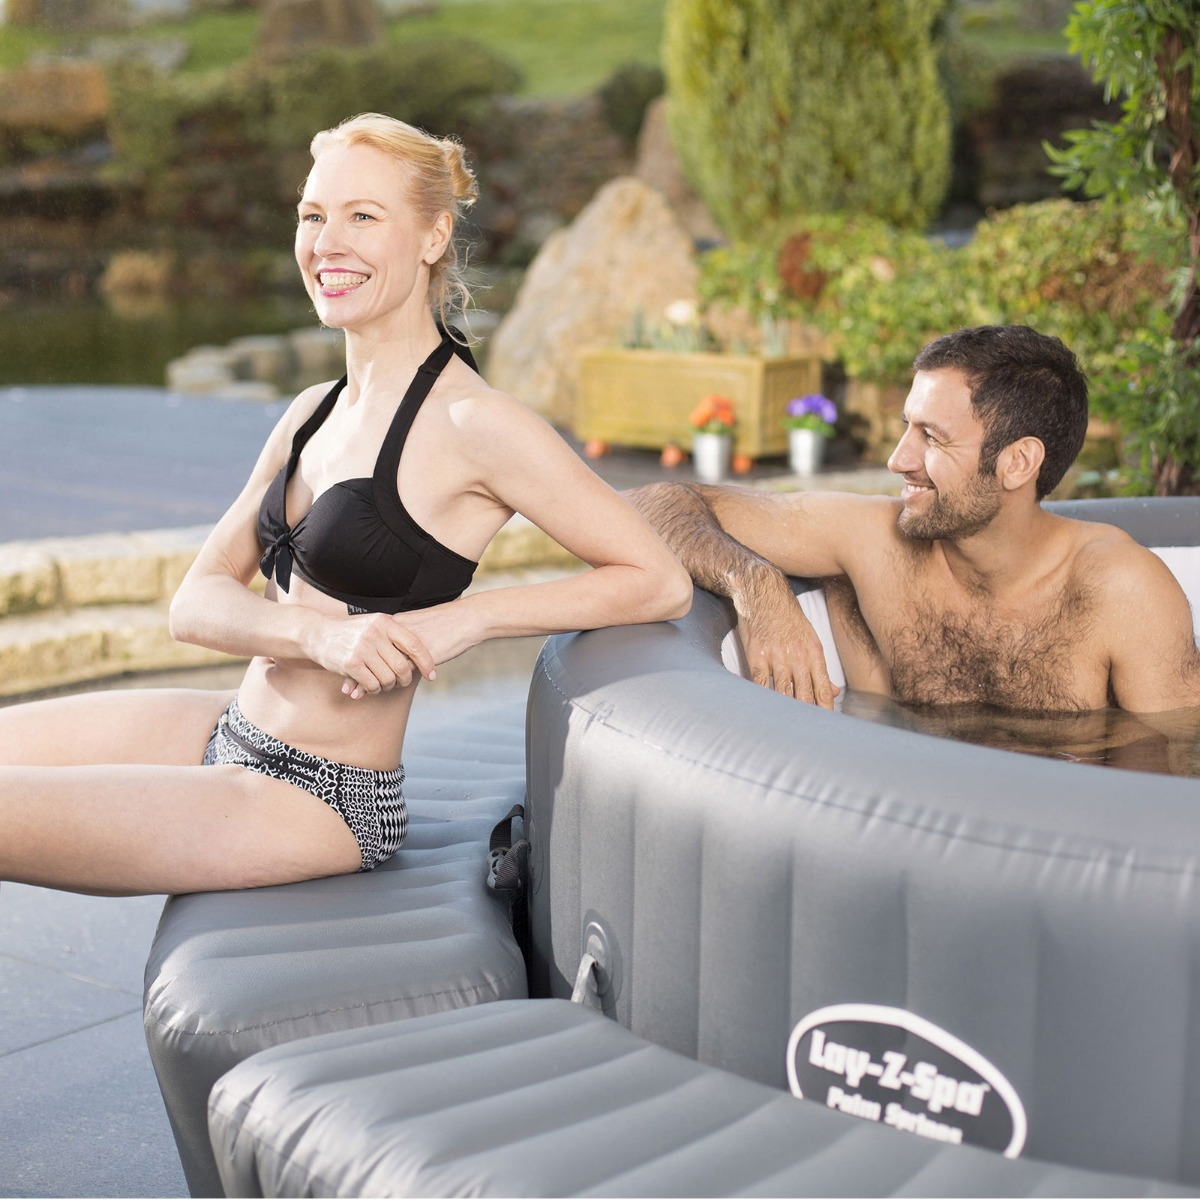 Bestway Lay-Z-Spa Accessories - Bench for ROUND Spa